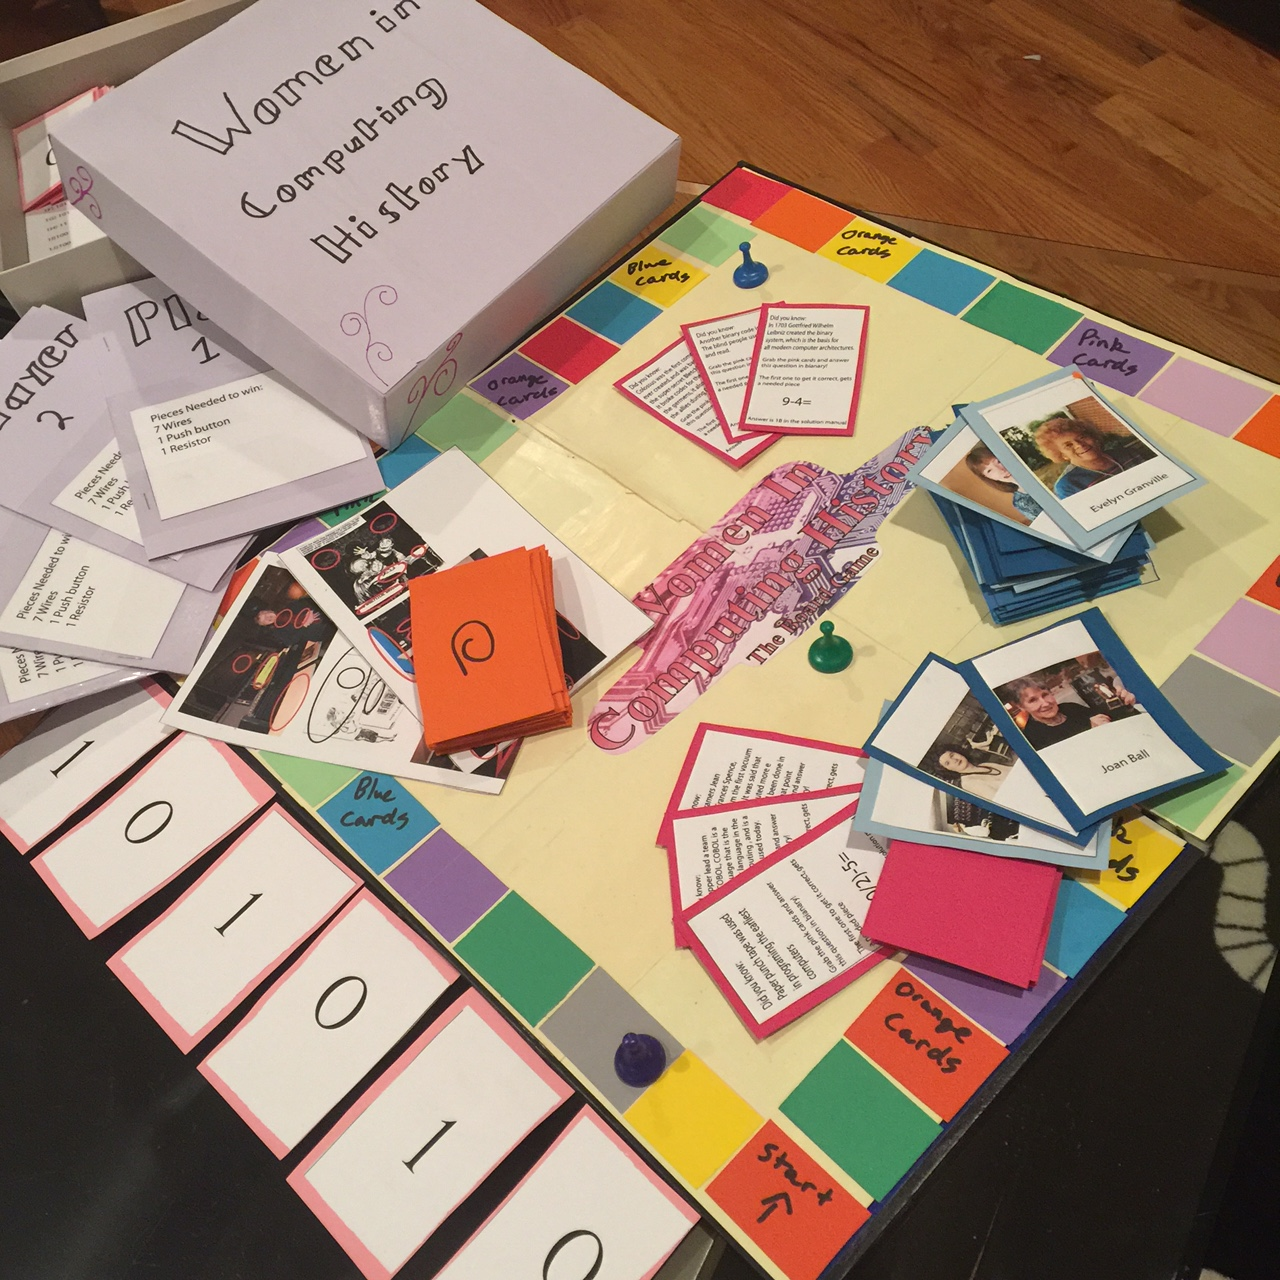 Women in Computing History 4-player board game